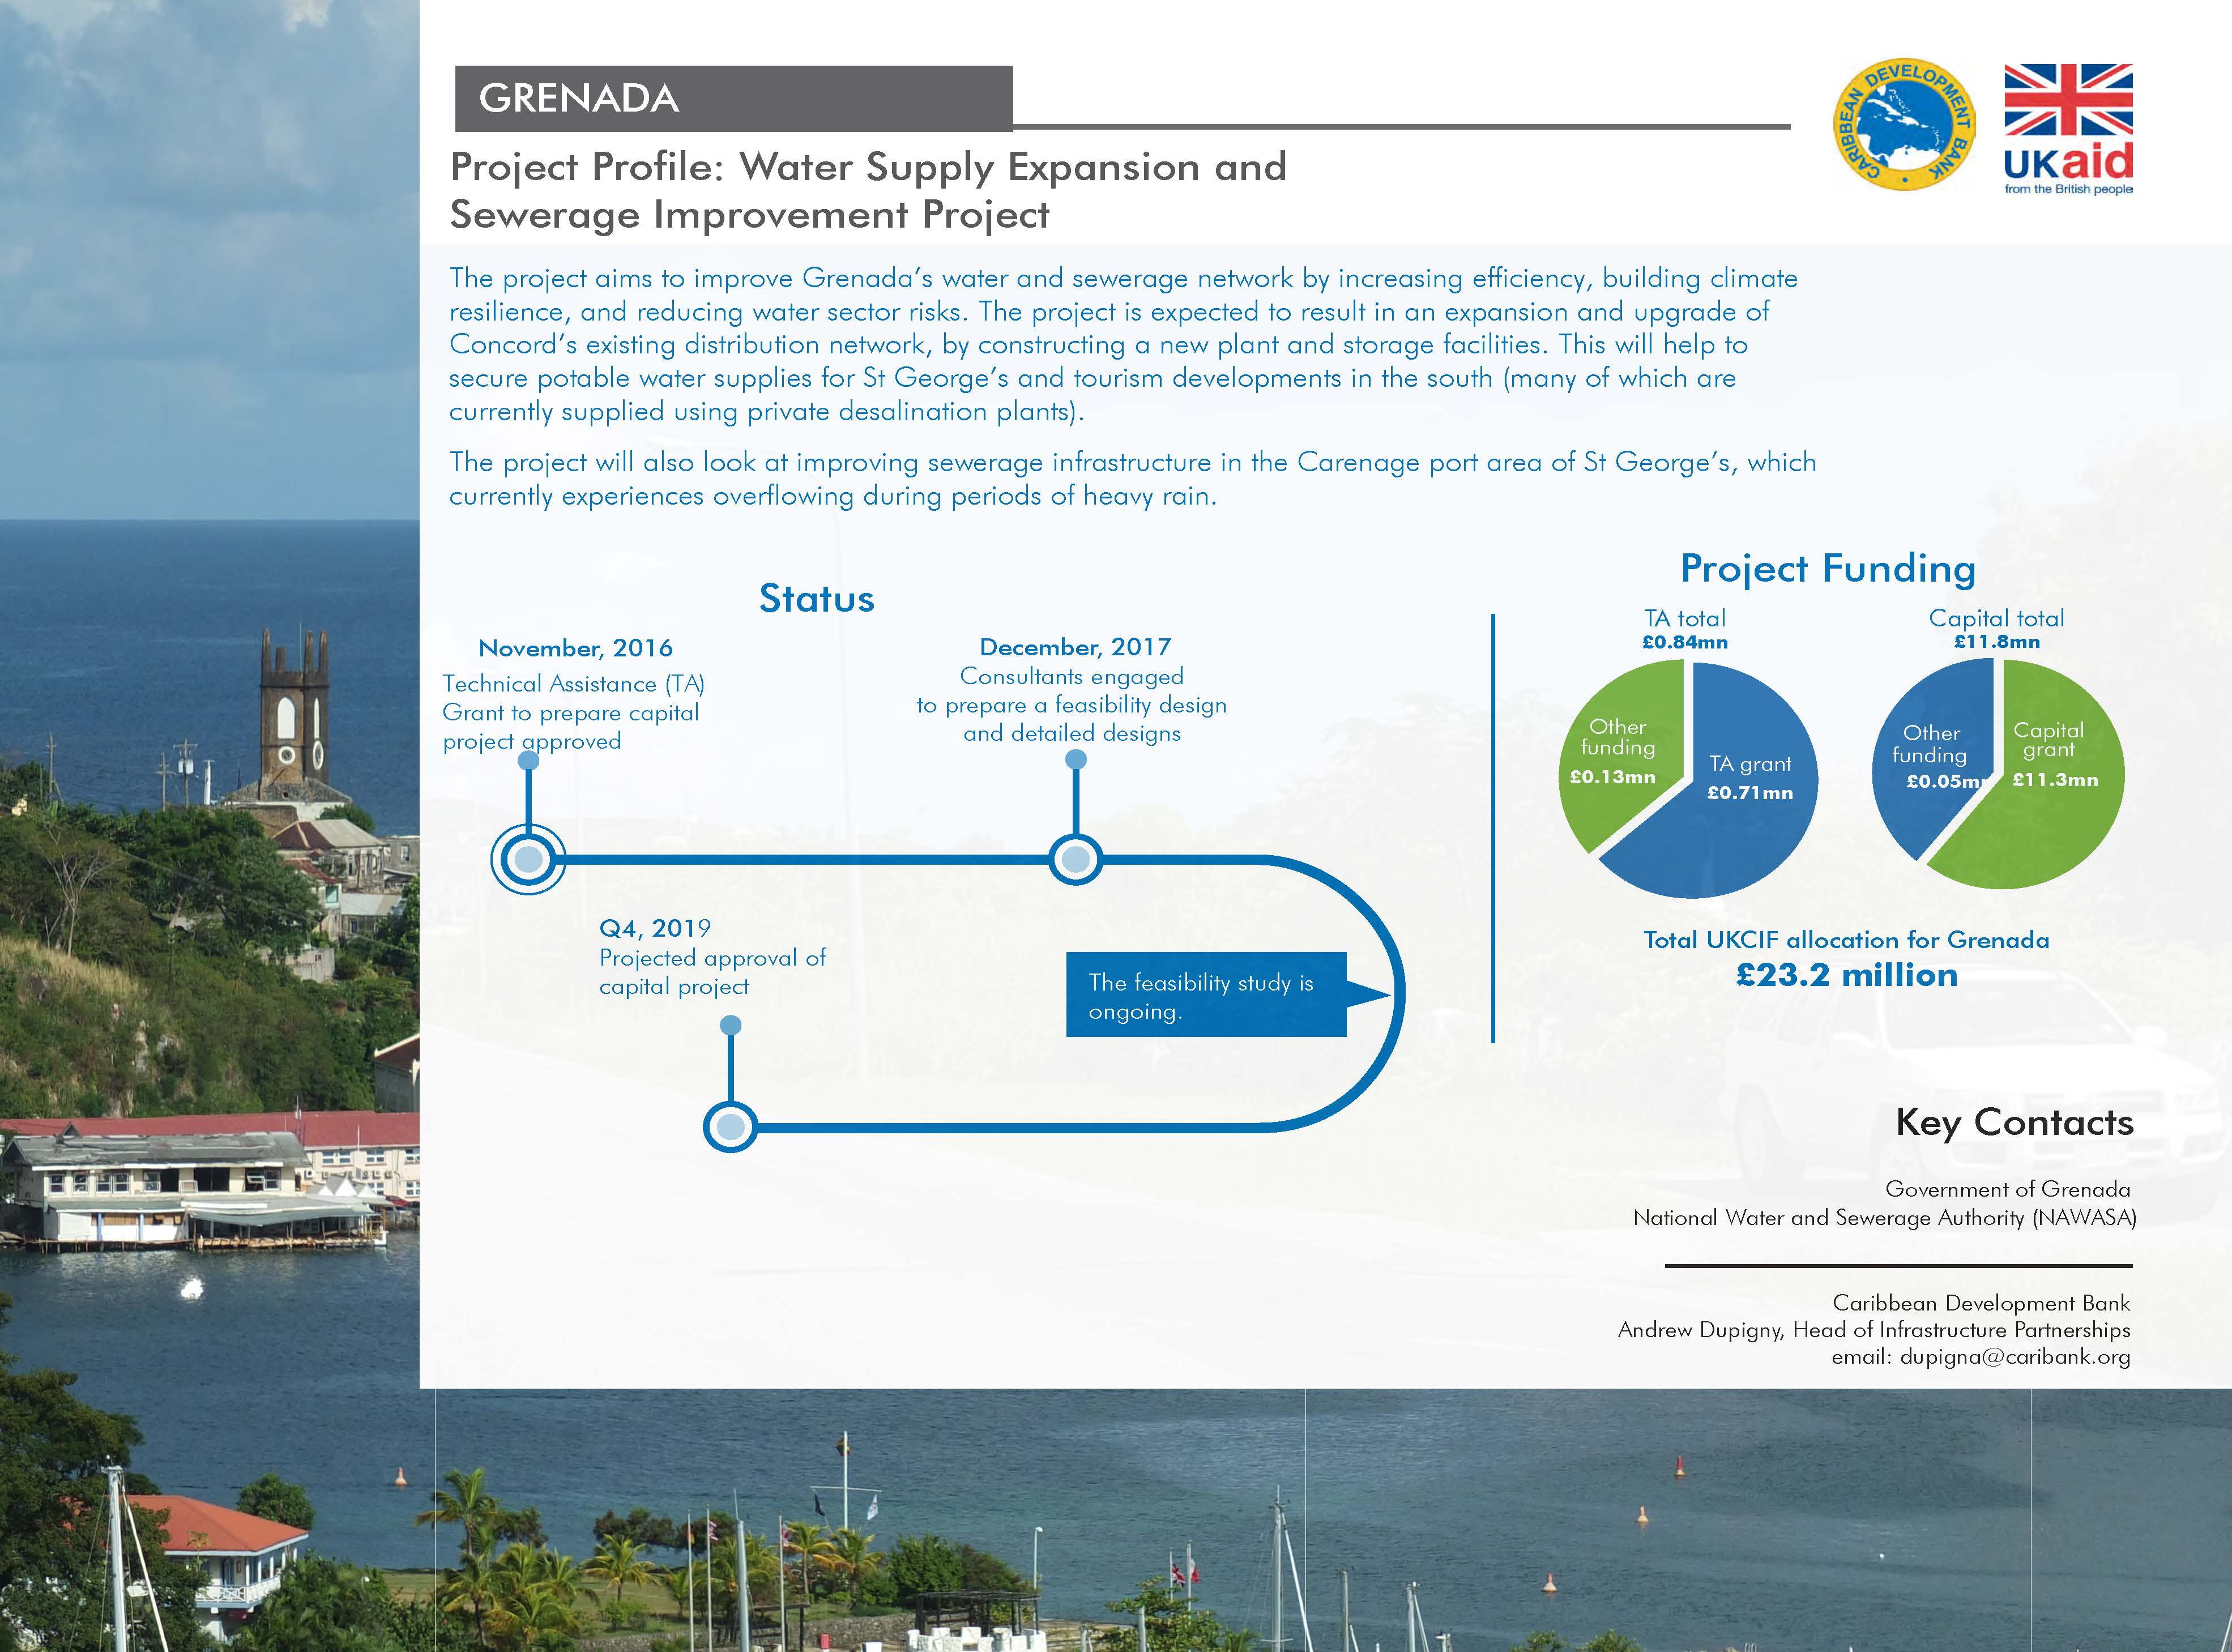 project profile with background image of a harbour in Grenada with text and charts against white backdrop